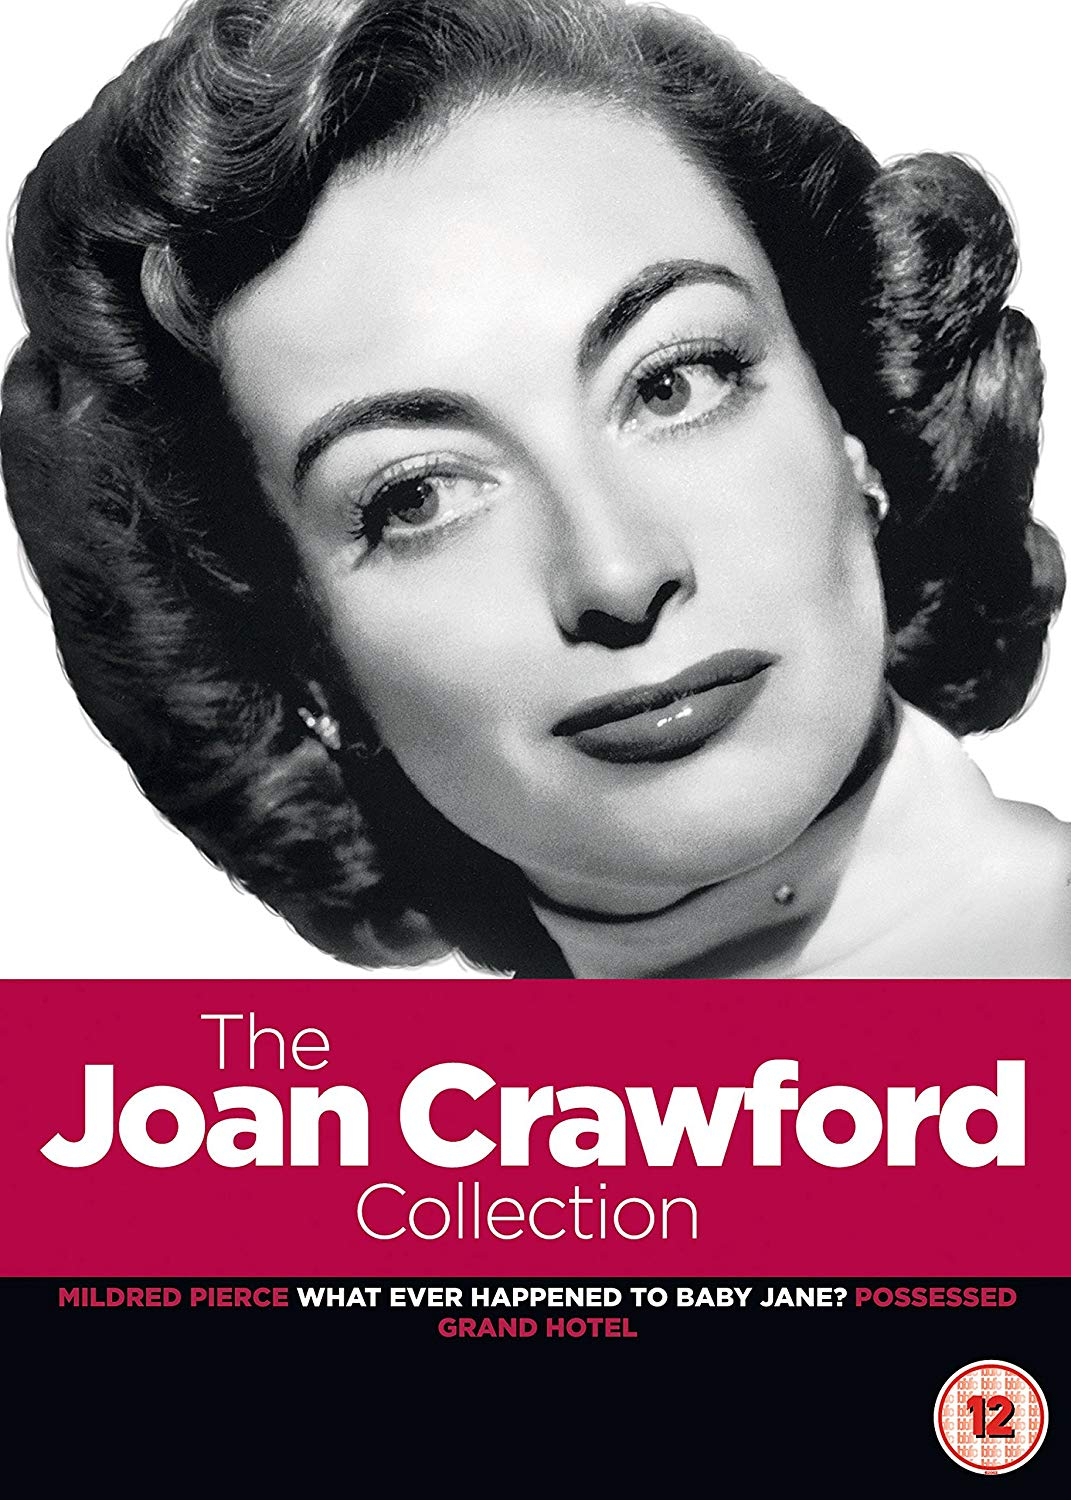 Buy The Joan Crawford Collection